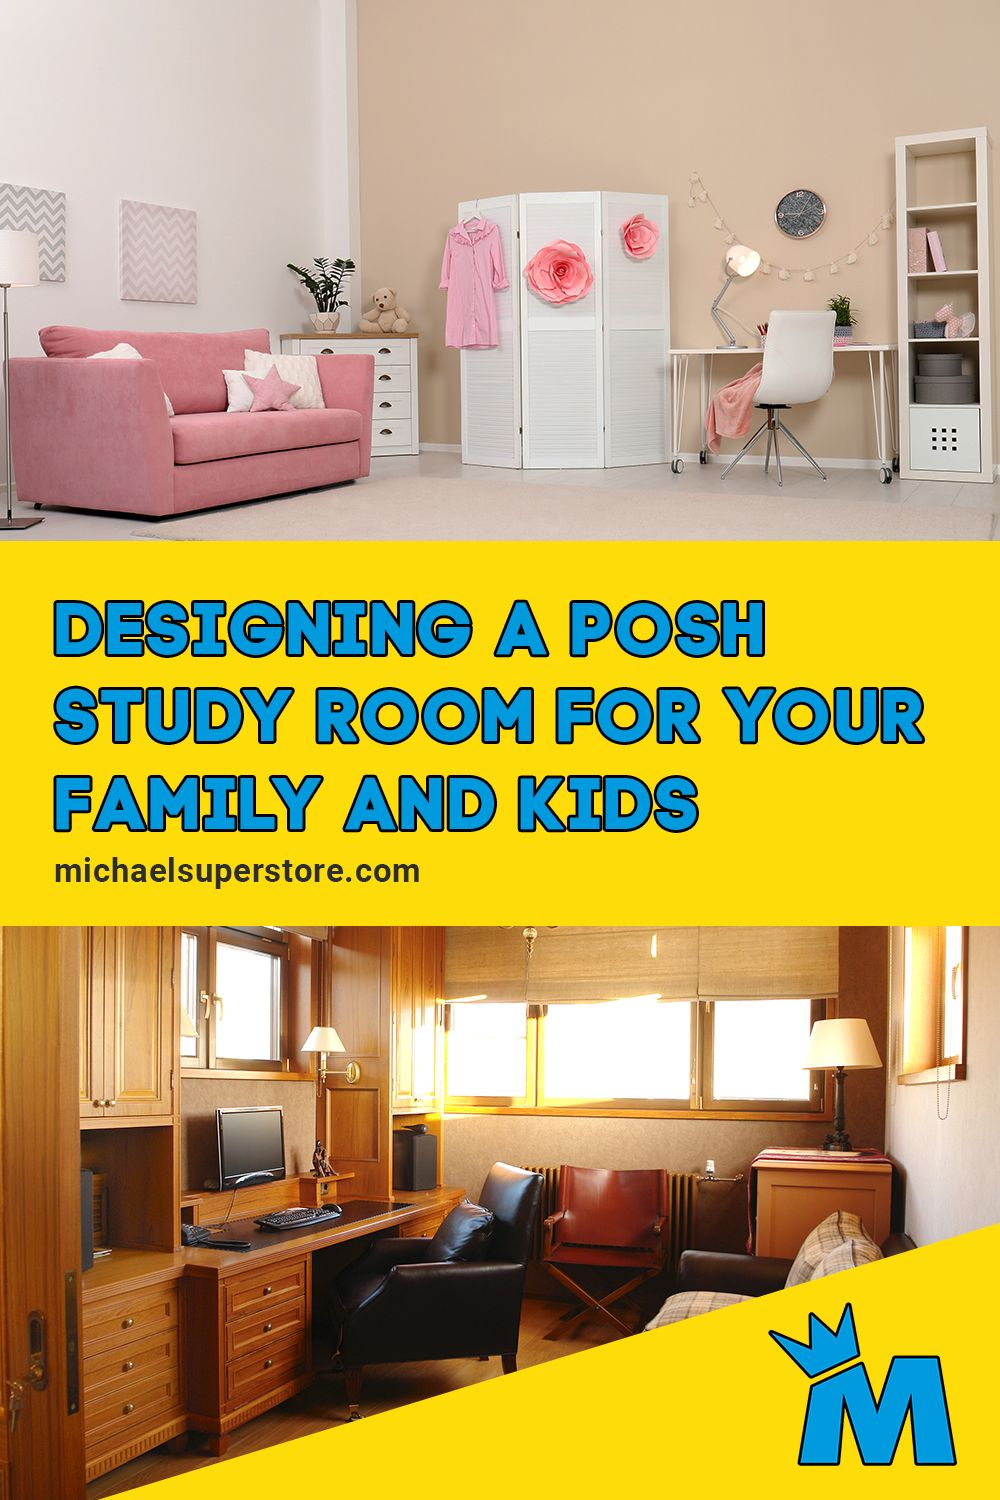 Decent Study Rooms: Designing A Posh Study Room For Your Family And Kids